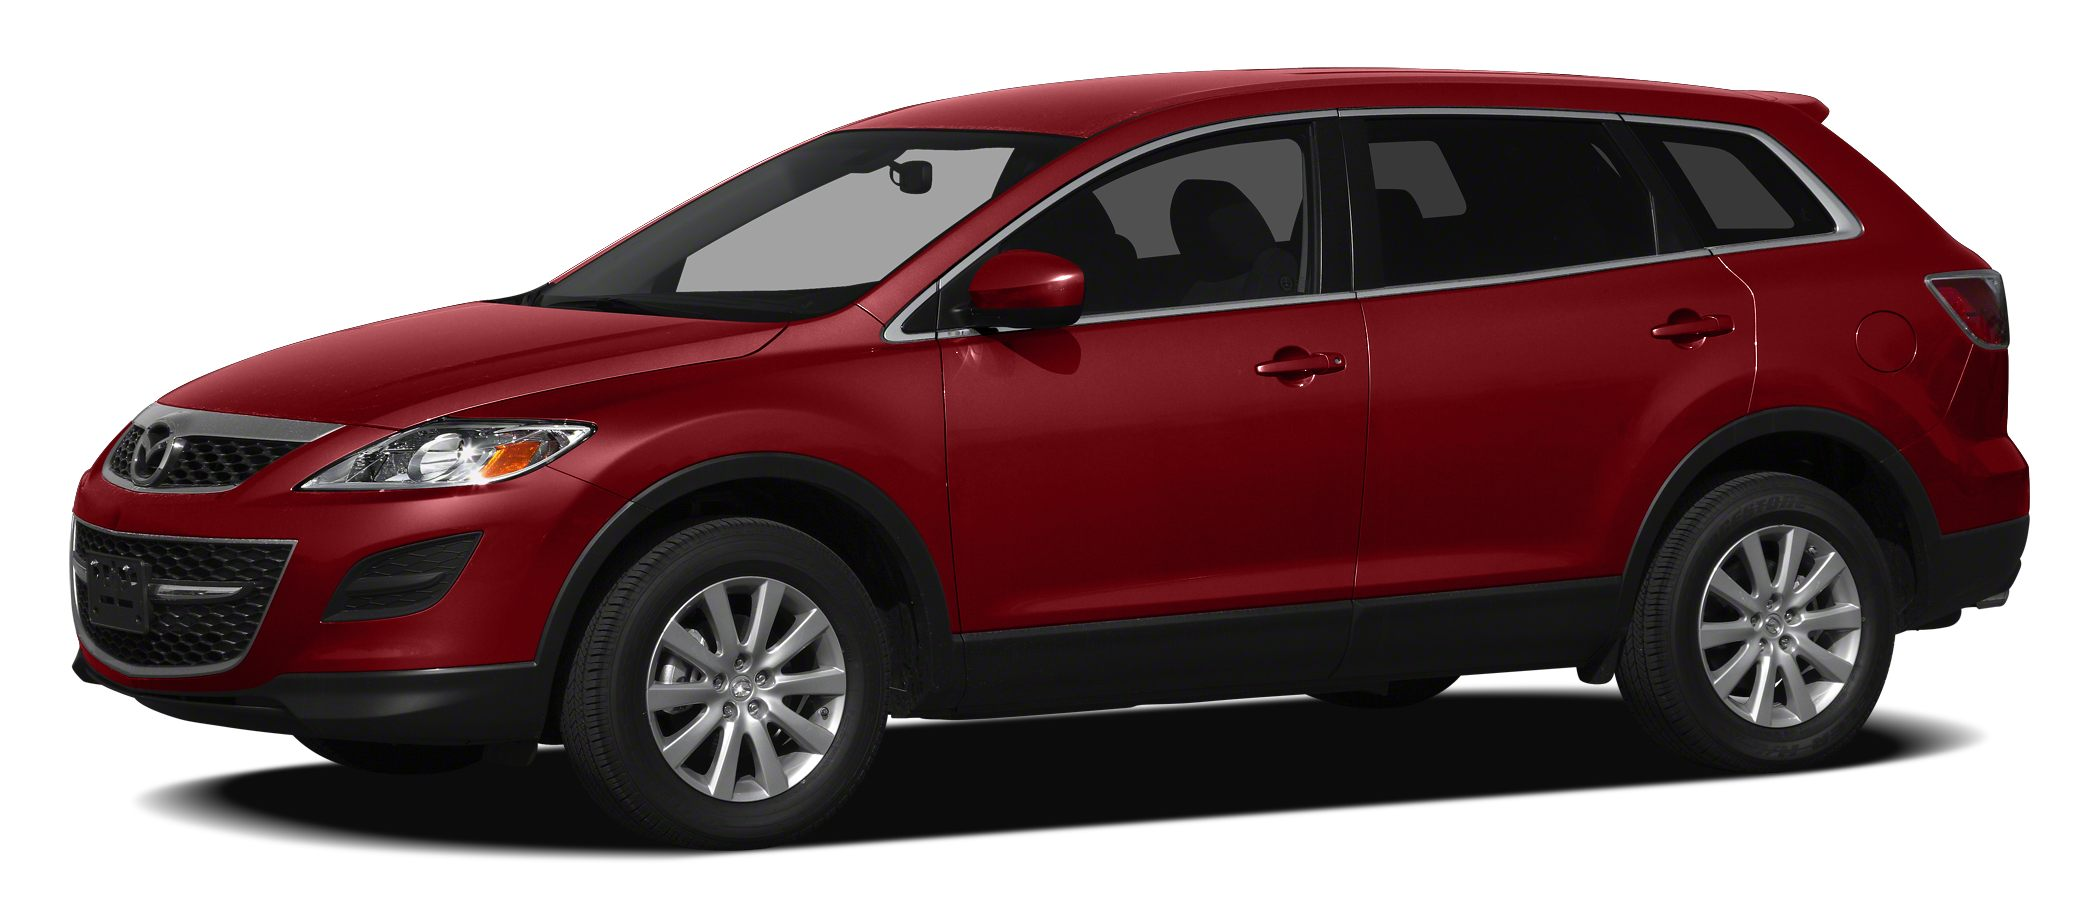 2012 Mazda CX-9 Touring Miles 37321Color Copper Red Mica Stock ZP366538 VIN JM3TB2CA5C036653